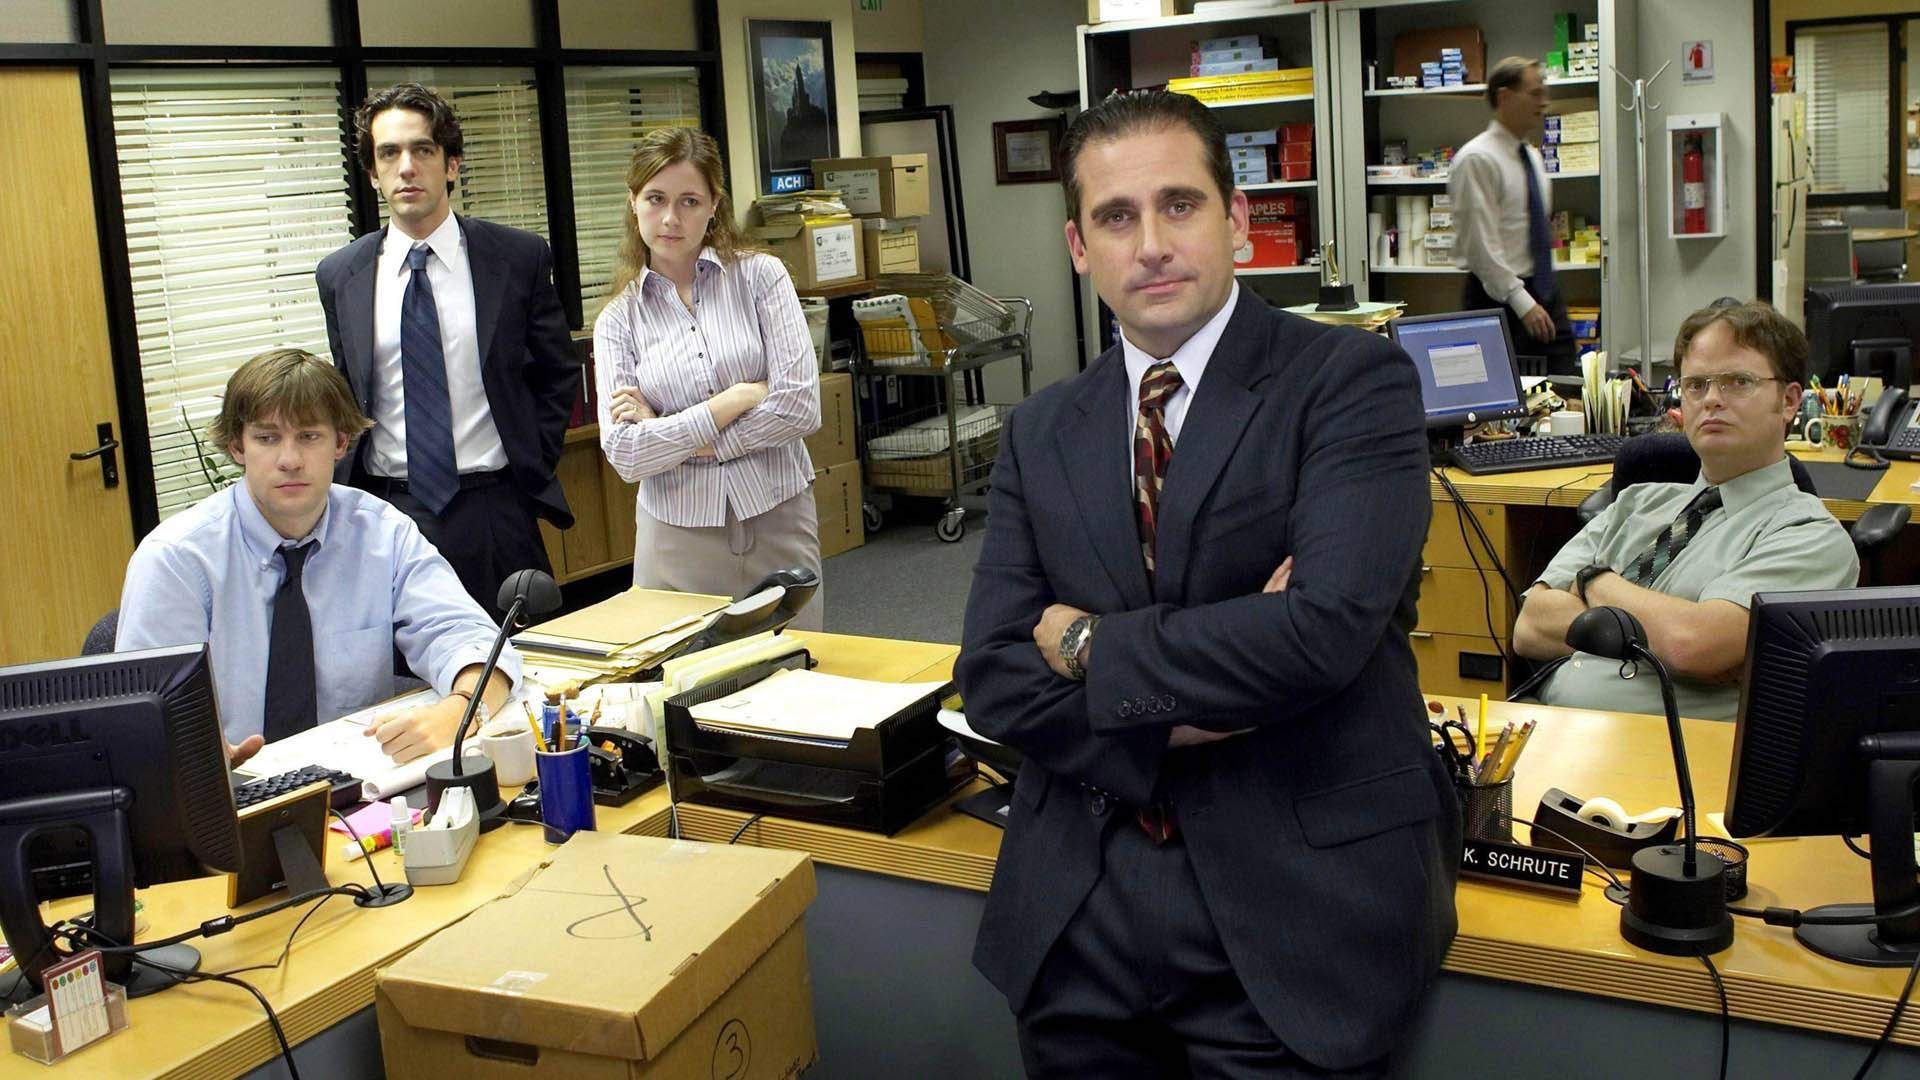 'The Office' Trivia